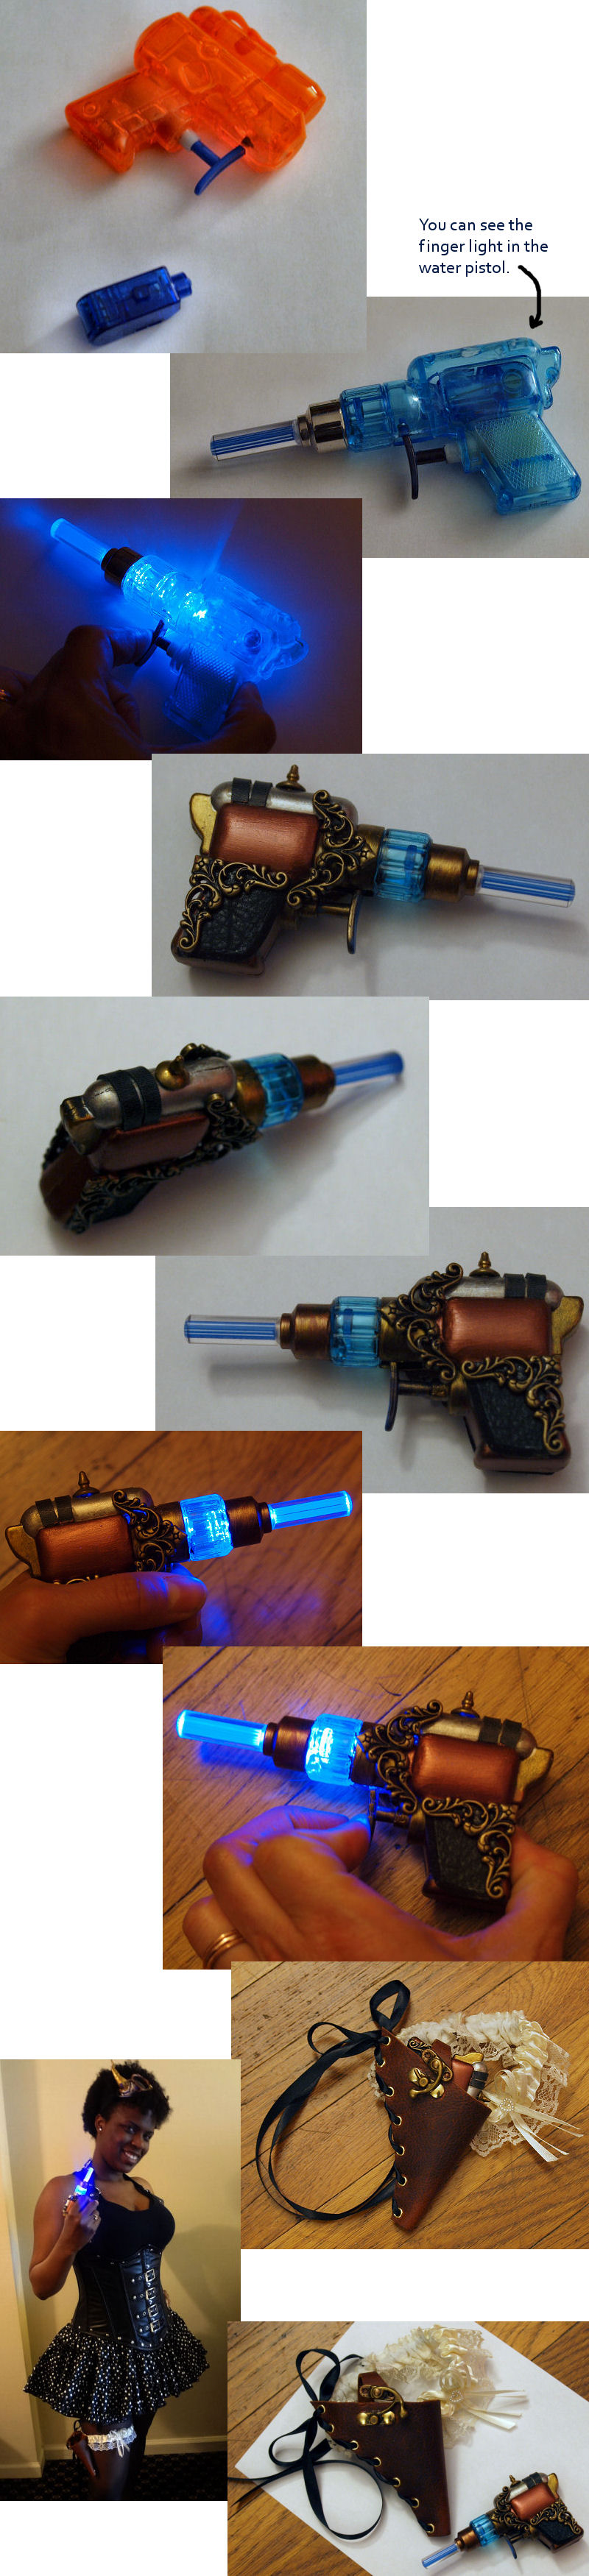 Steampunk Lady Killer Pistol and Garter Holster by ajldesign